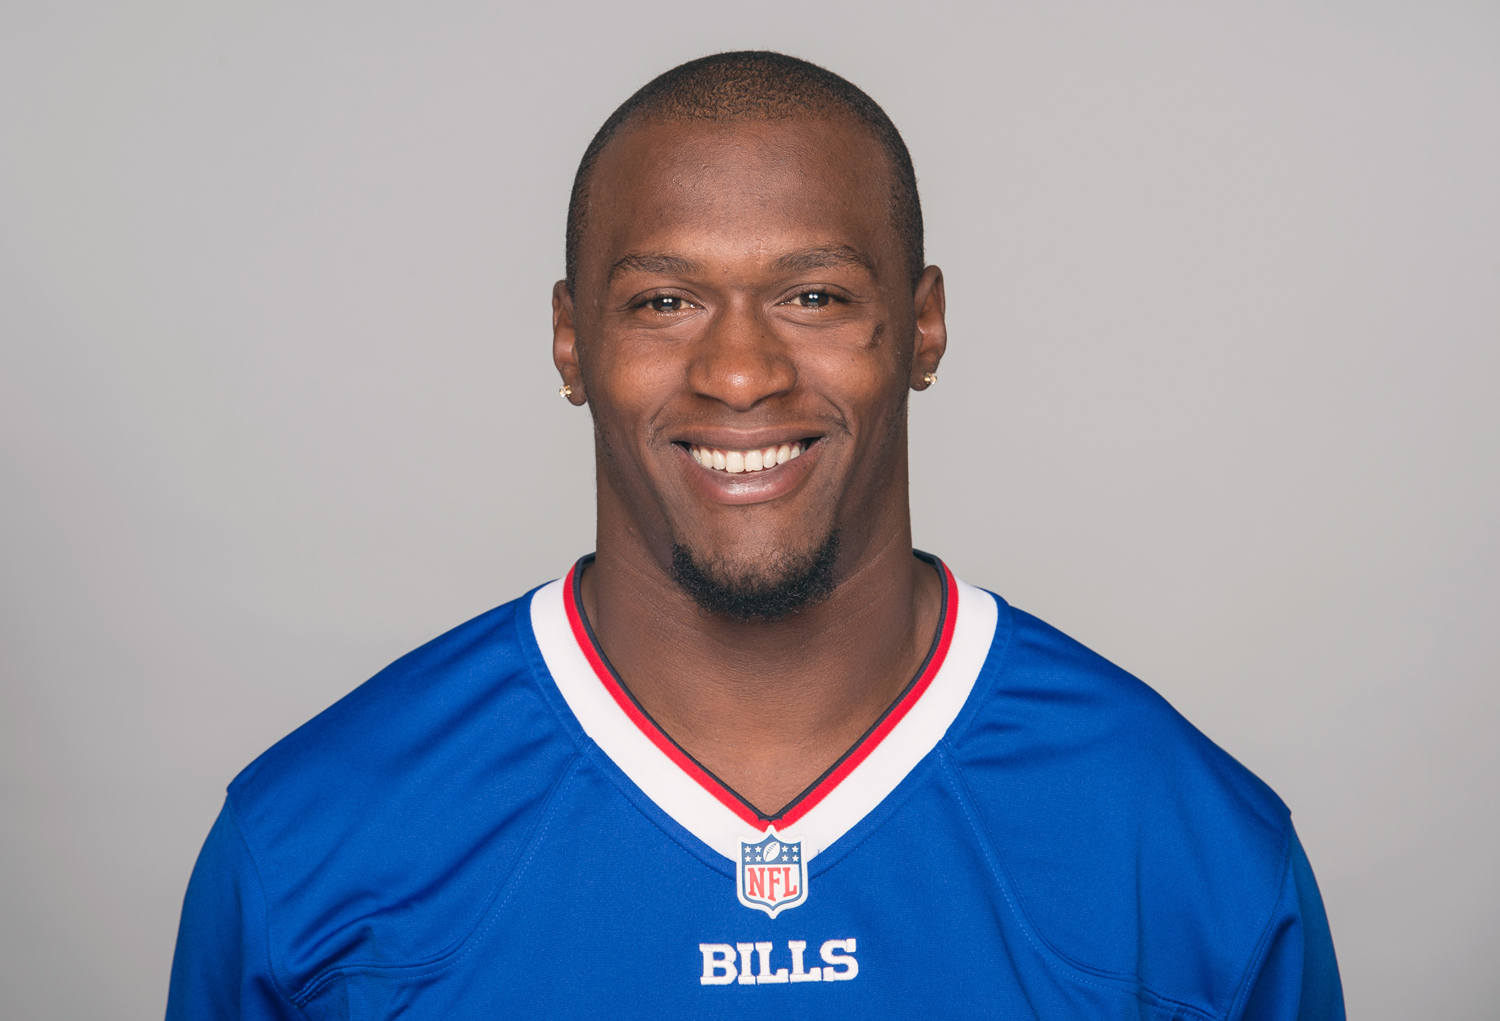 FILE - This is a 2015 file photo showing Leodis McKelvin of the Buffalo Bills NFL football team. Veteran cornerback Leodis McKelvin has been released by the Buffalo Bills in the team's latest cost-cutting move. The move was confirmed to The Associated Pre